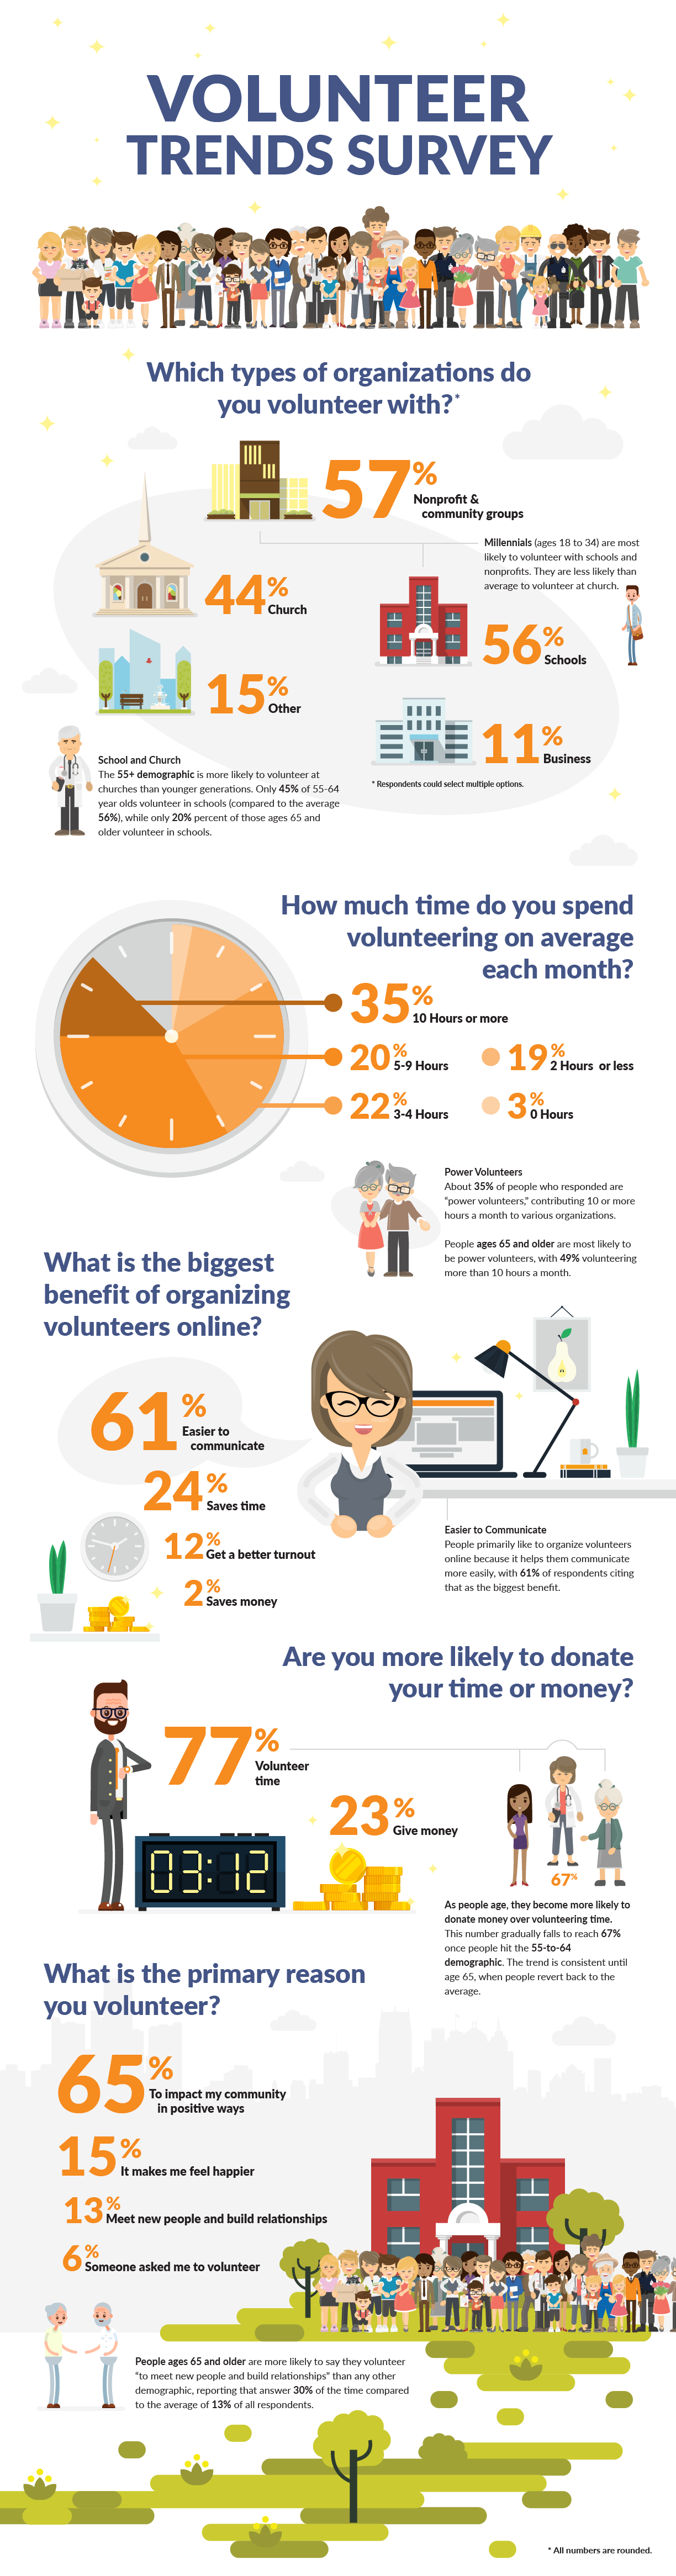 Volunteer-Trends-Infographic.png